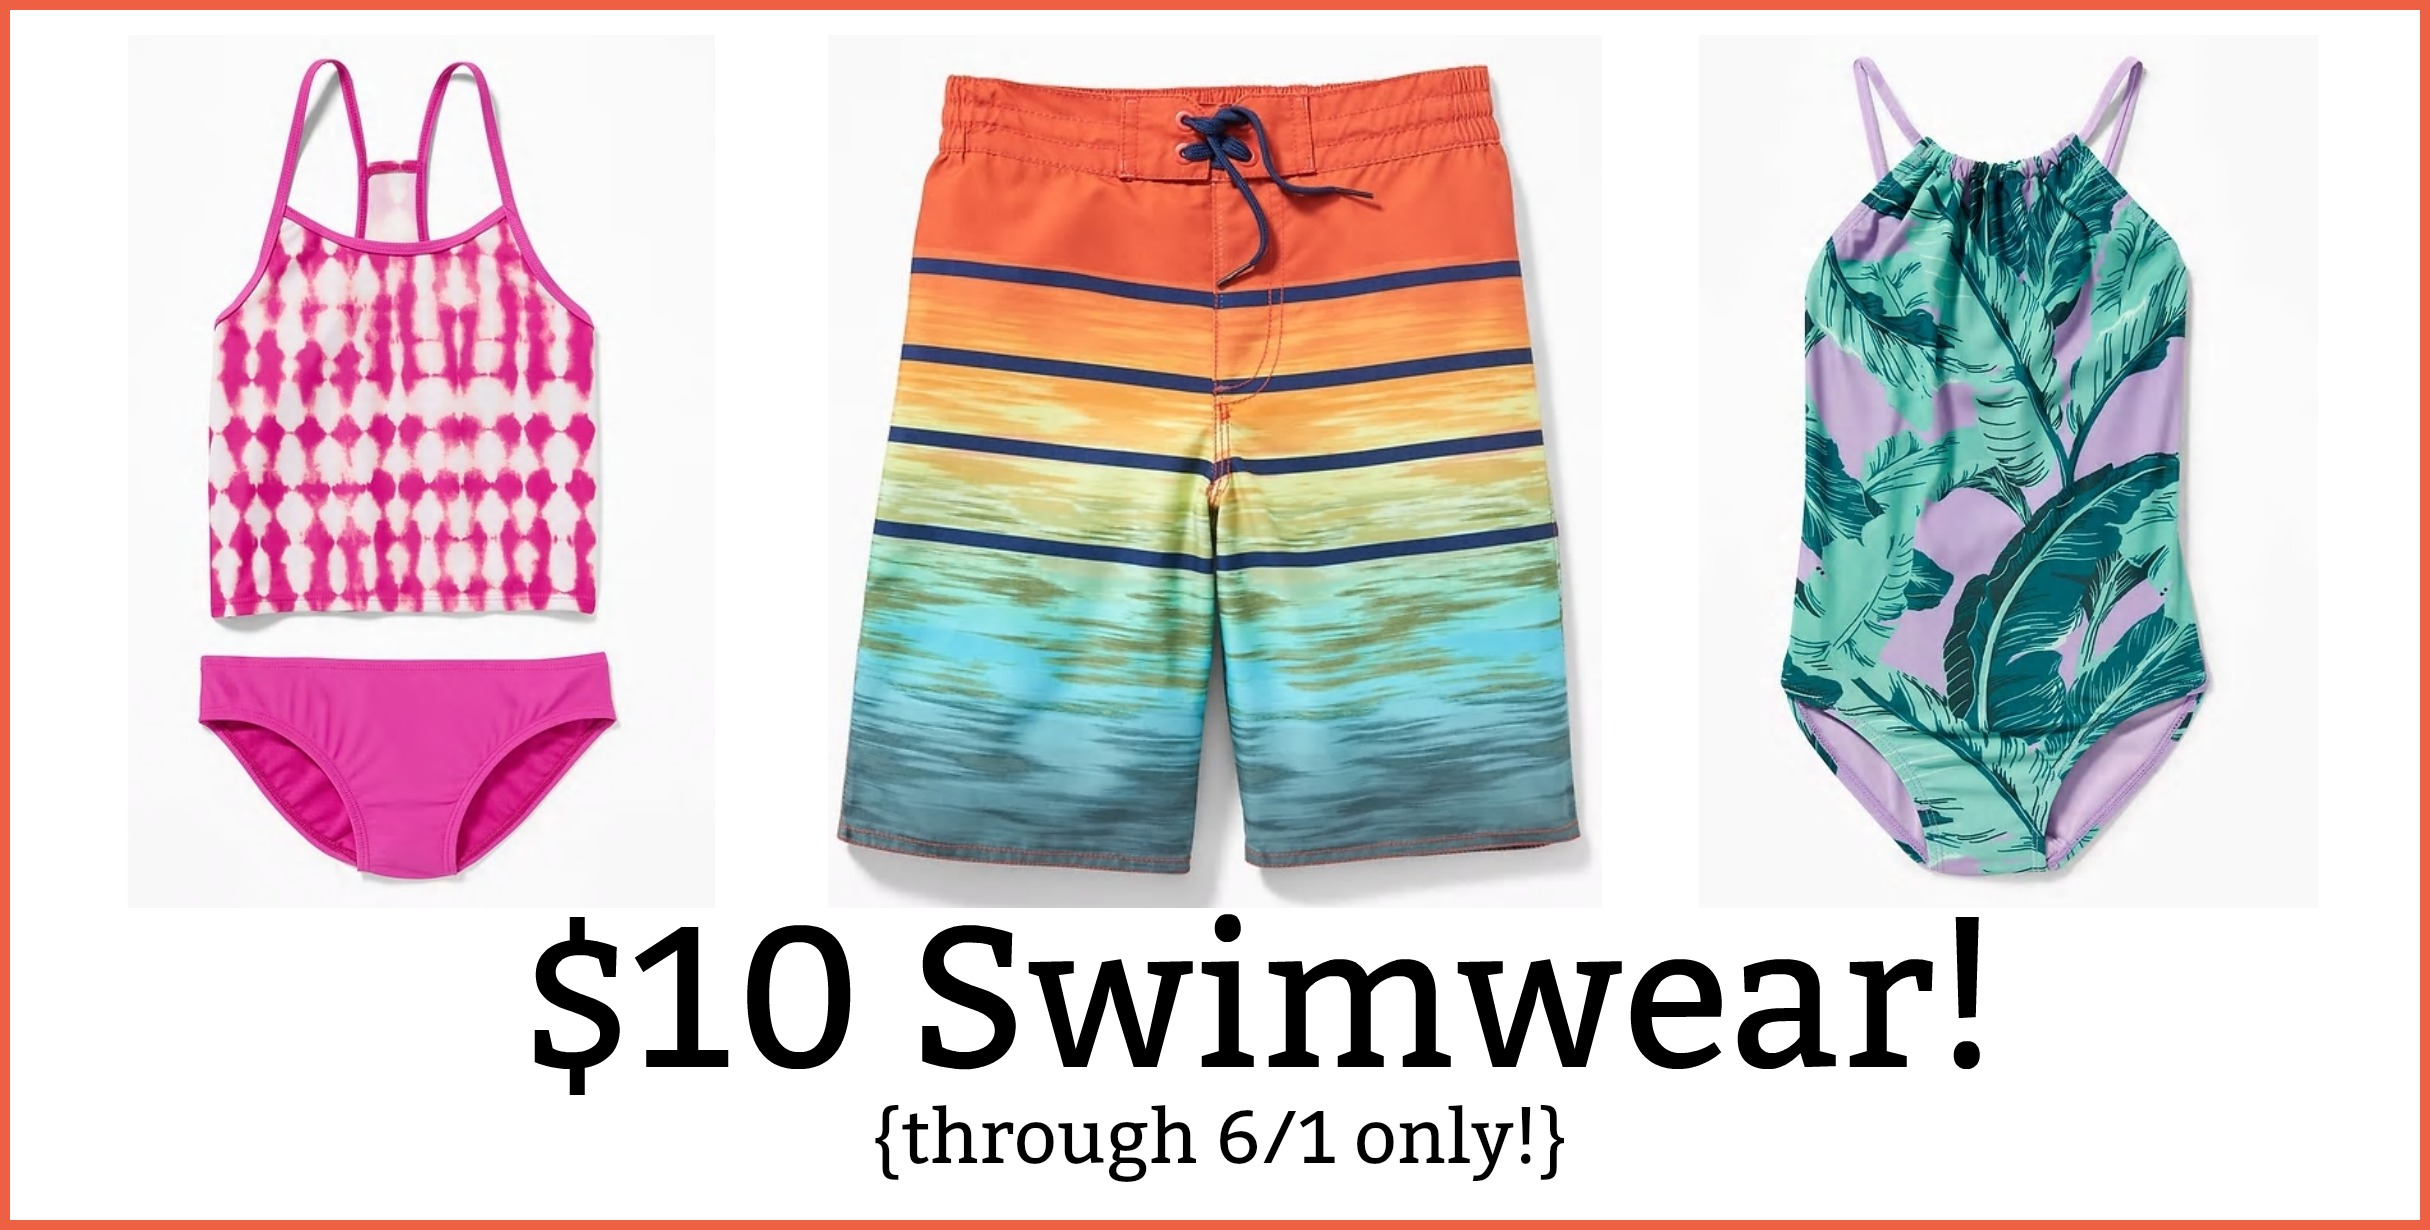 Old Navy: Kids\' Swimwear Just $10 (6/1 only)!